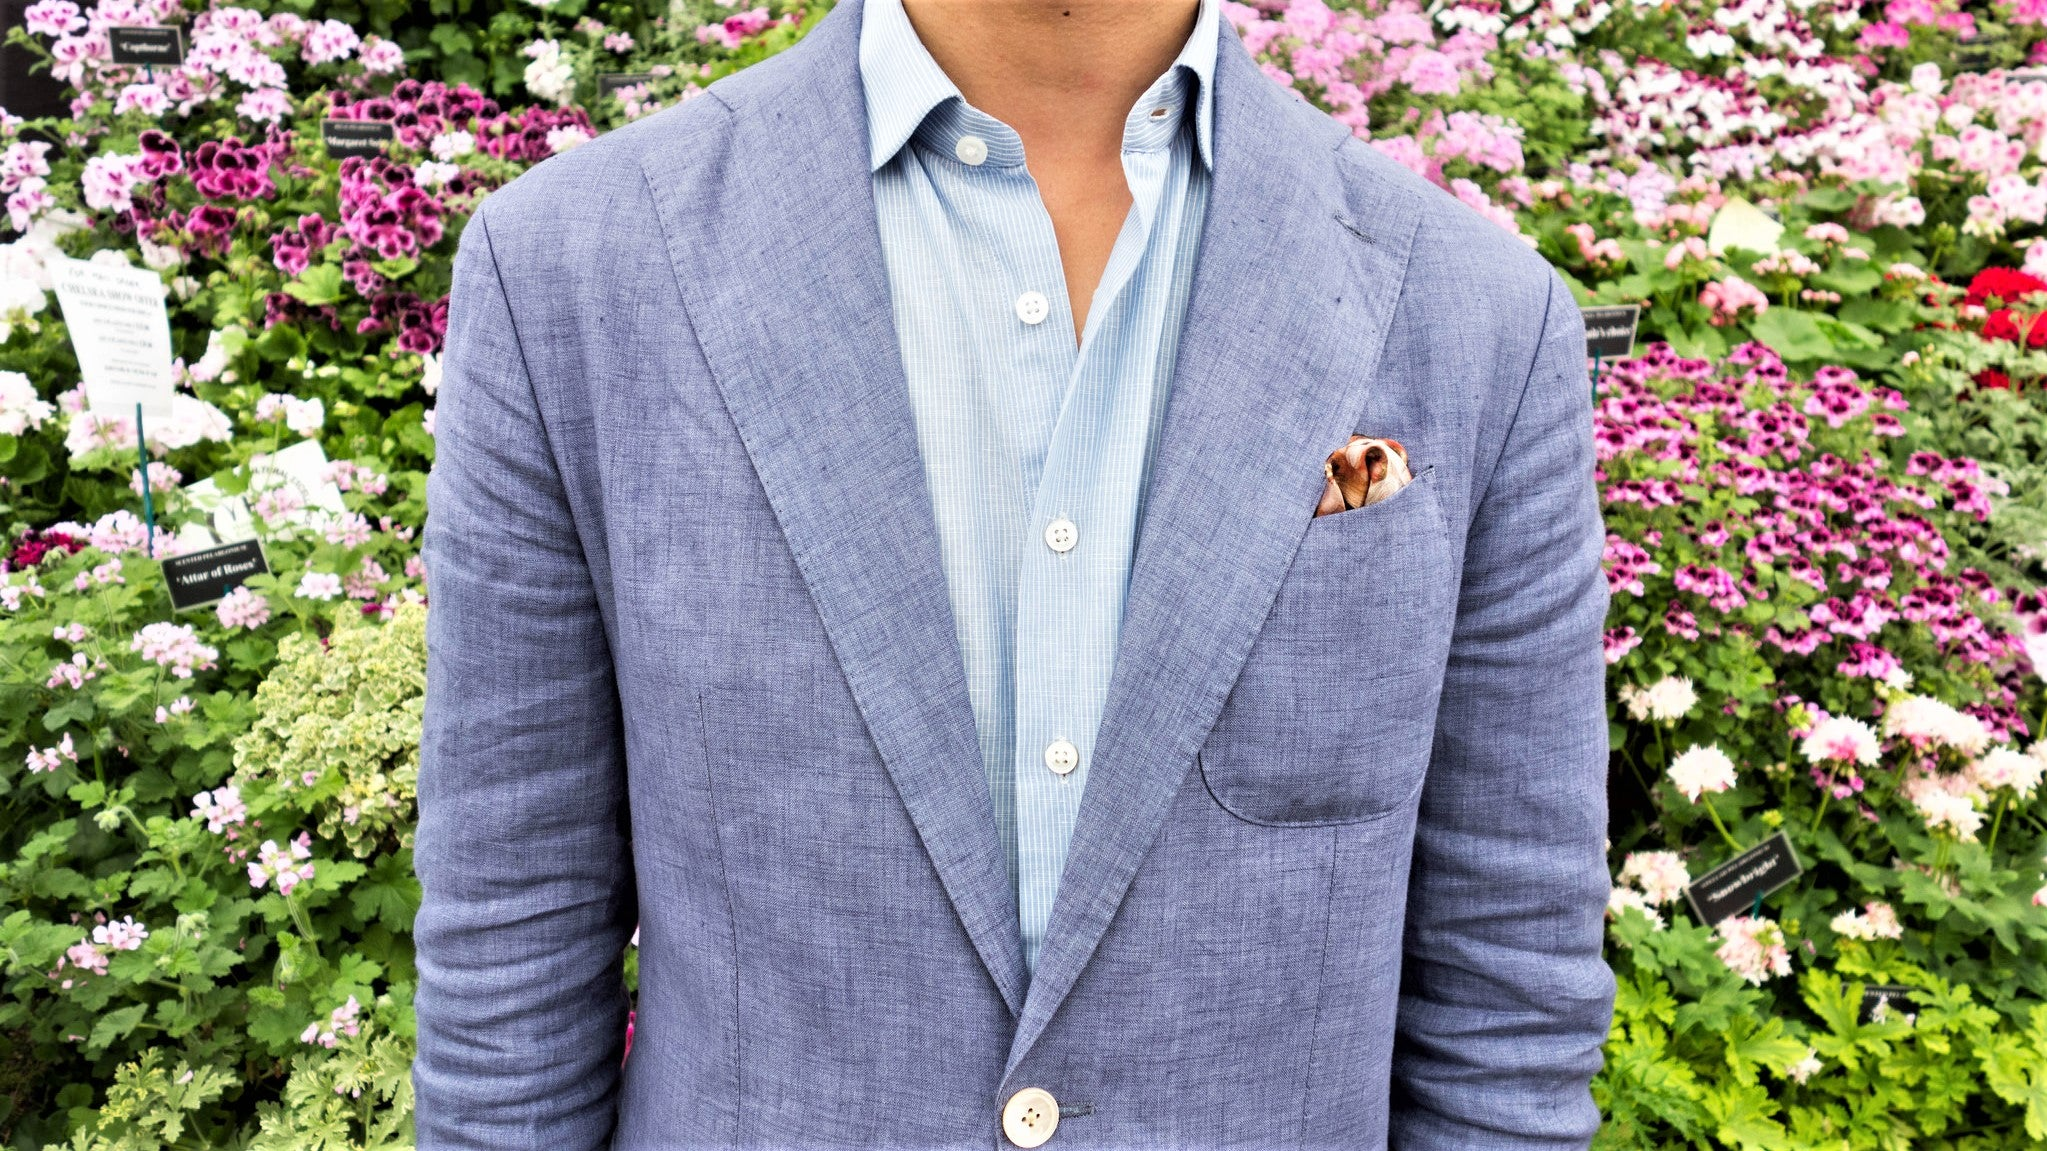 How To Look Sharp In The Summer (And Still Beat The Heat)